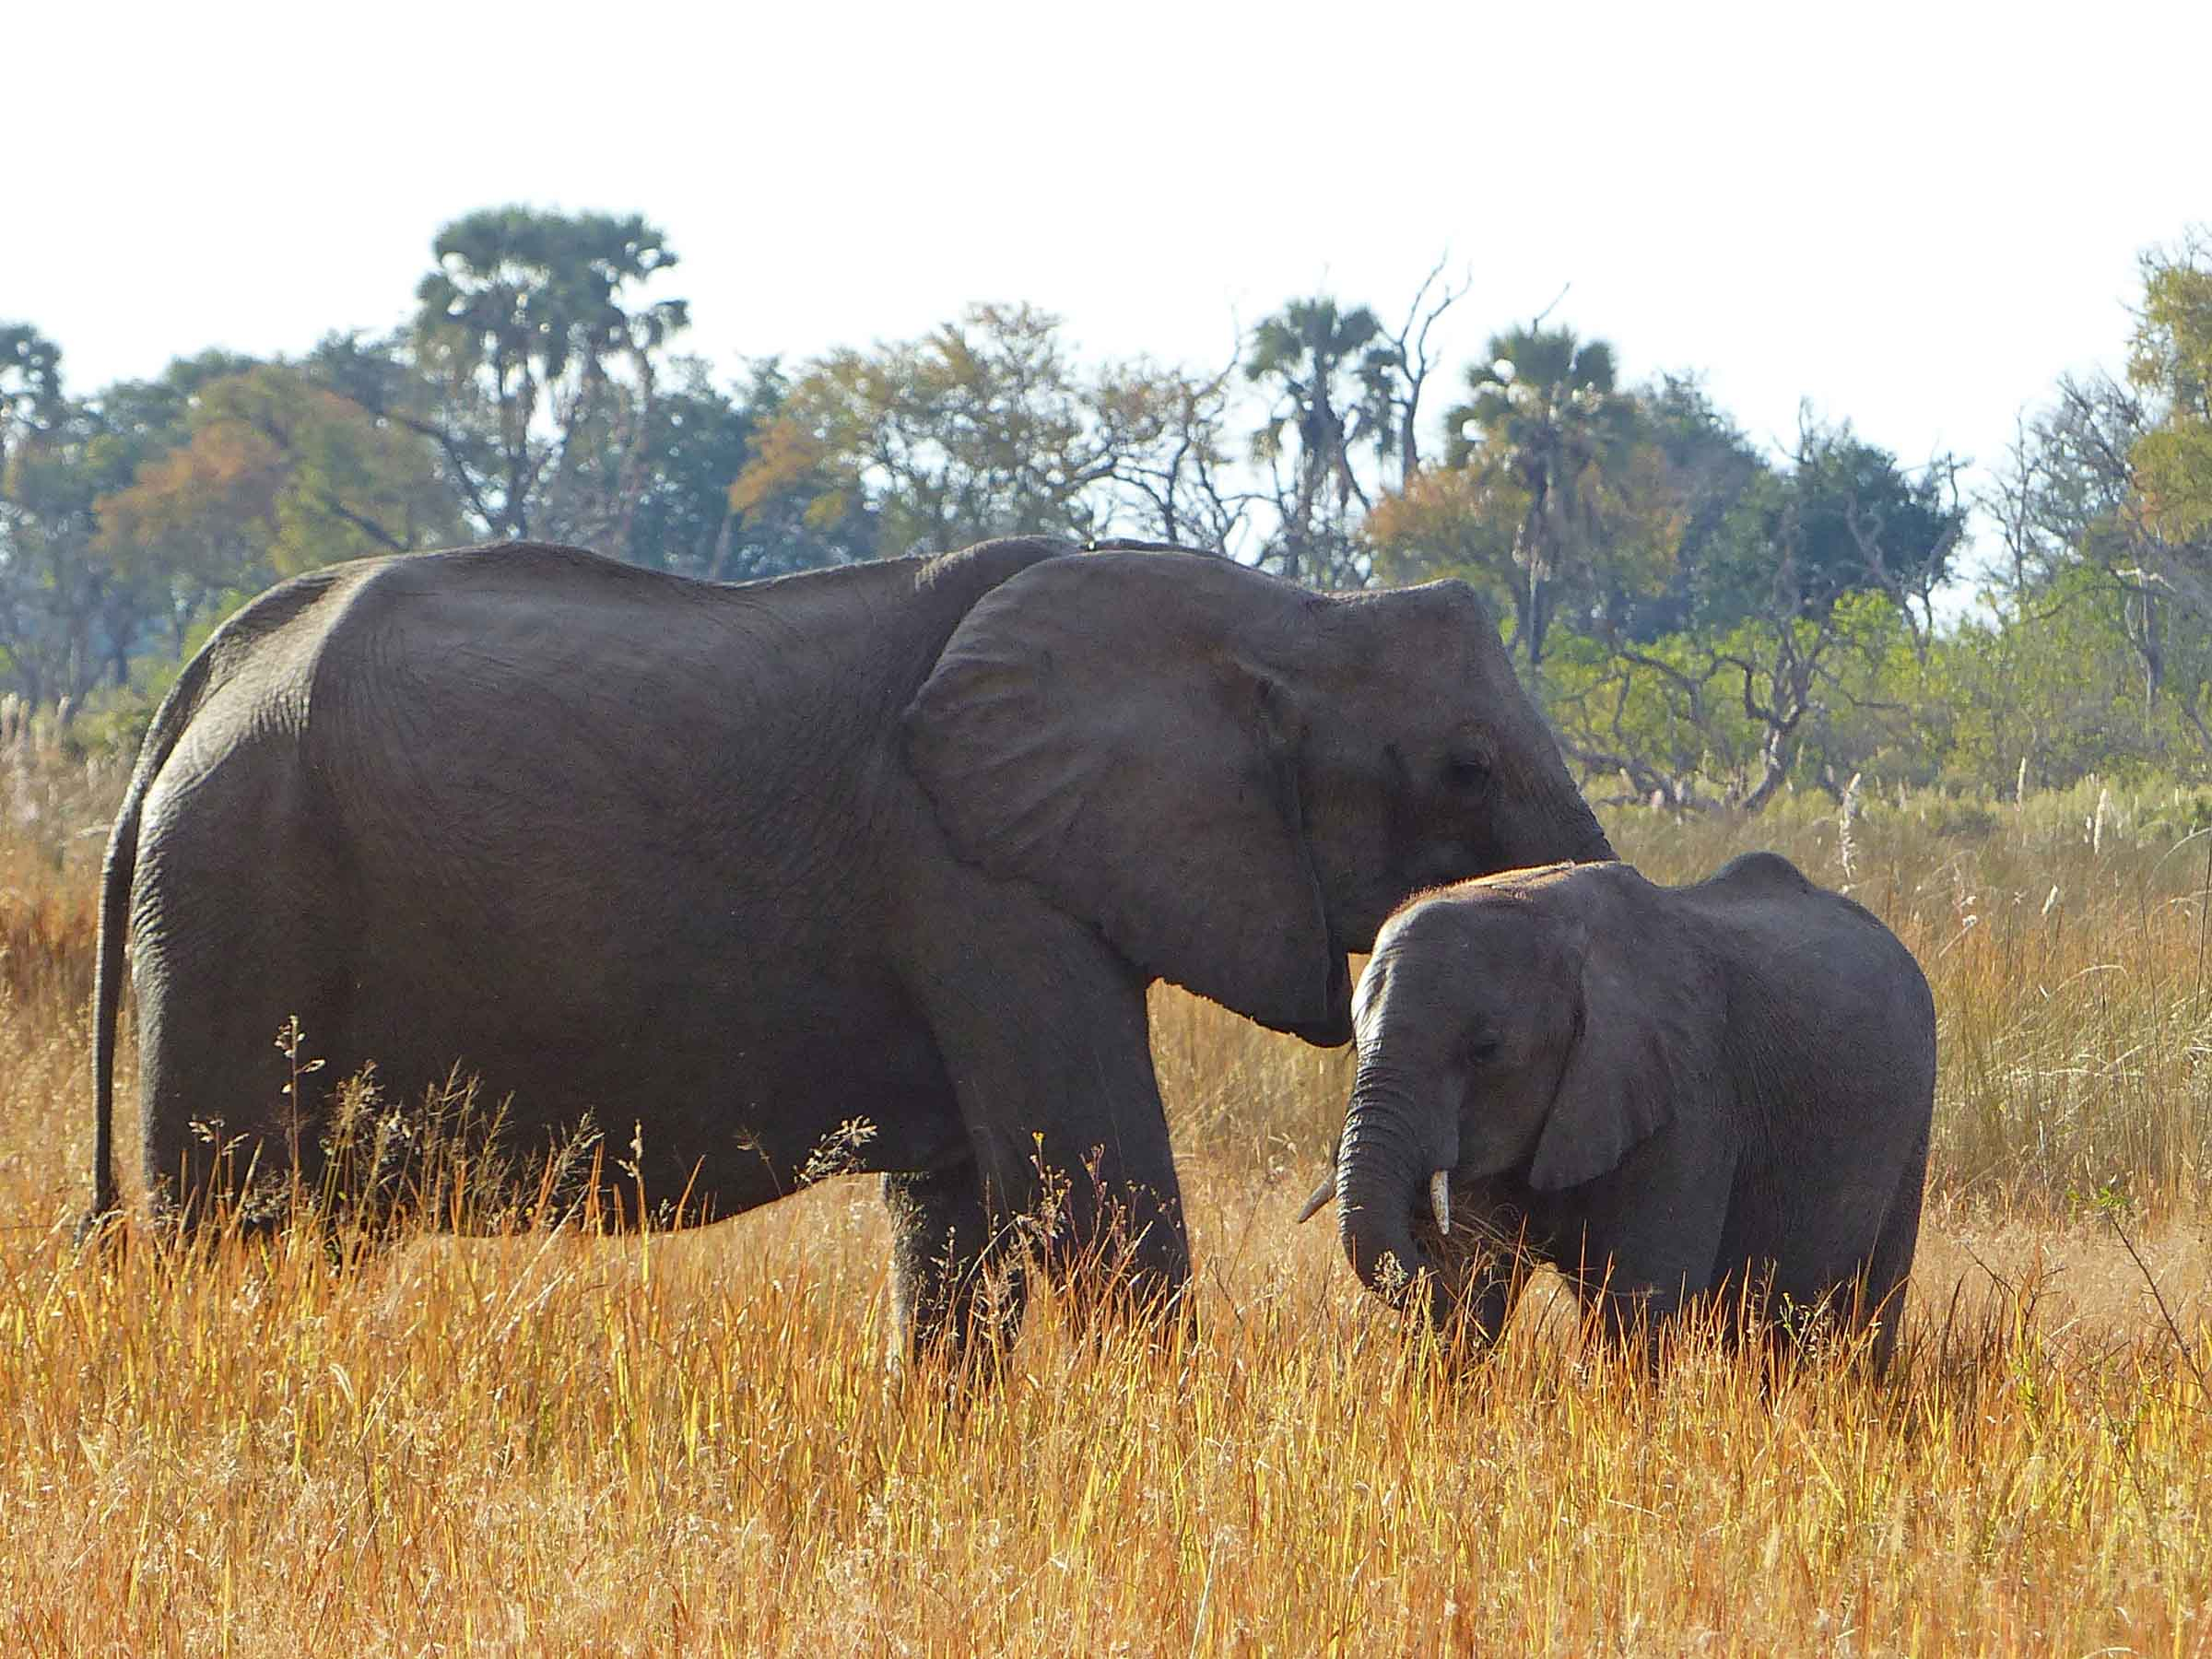 Large and small elephant in long grass